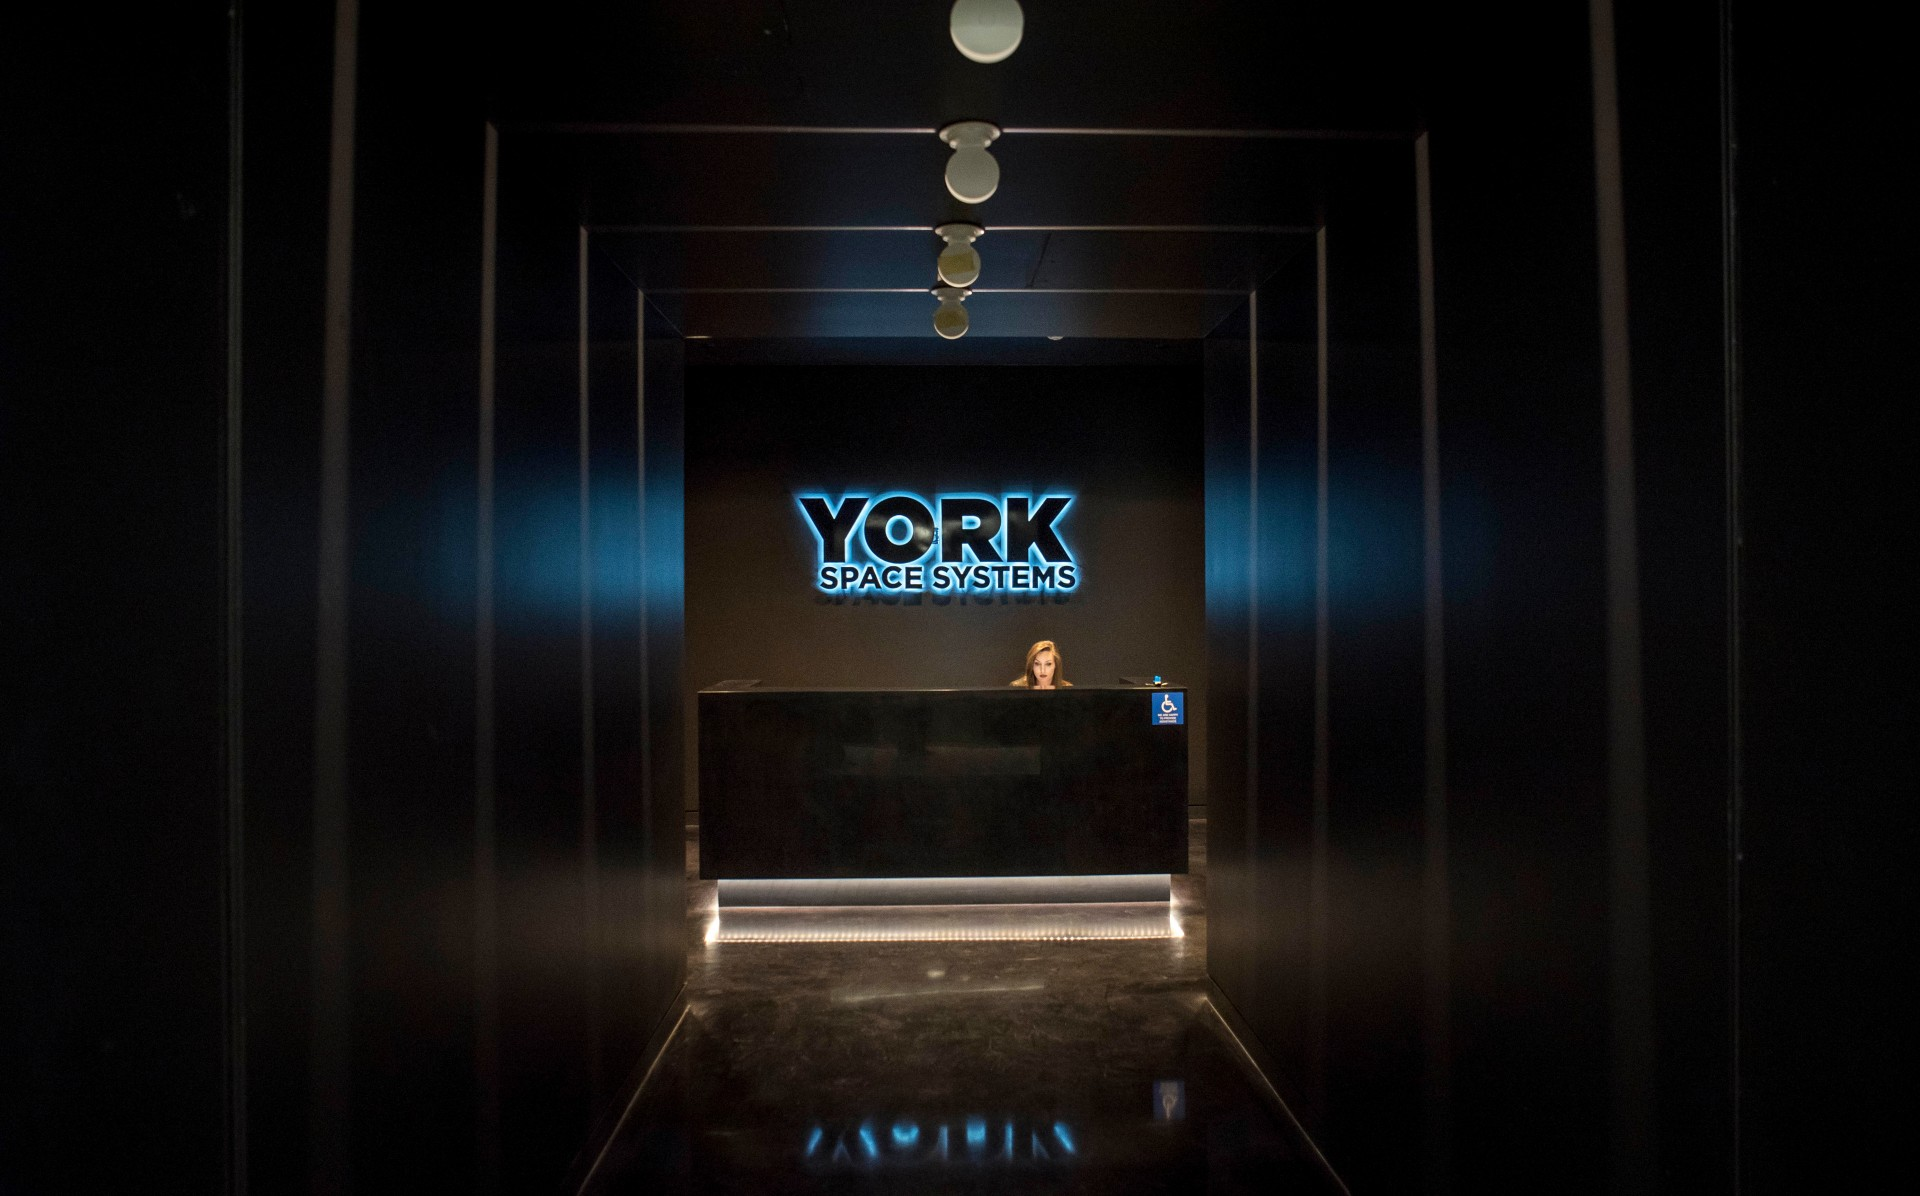 York-space-systems-site